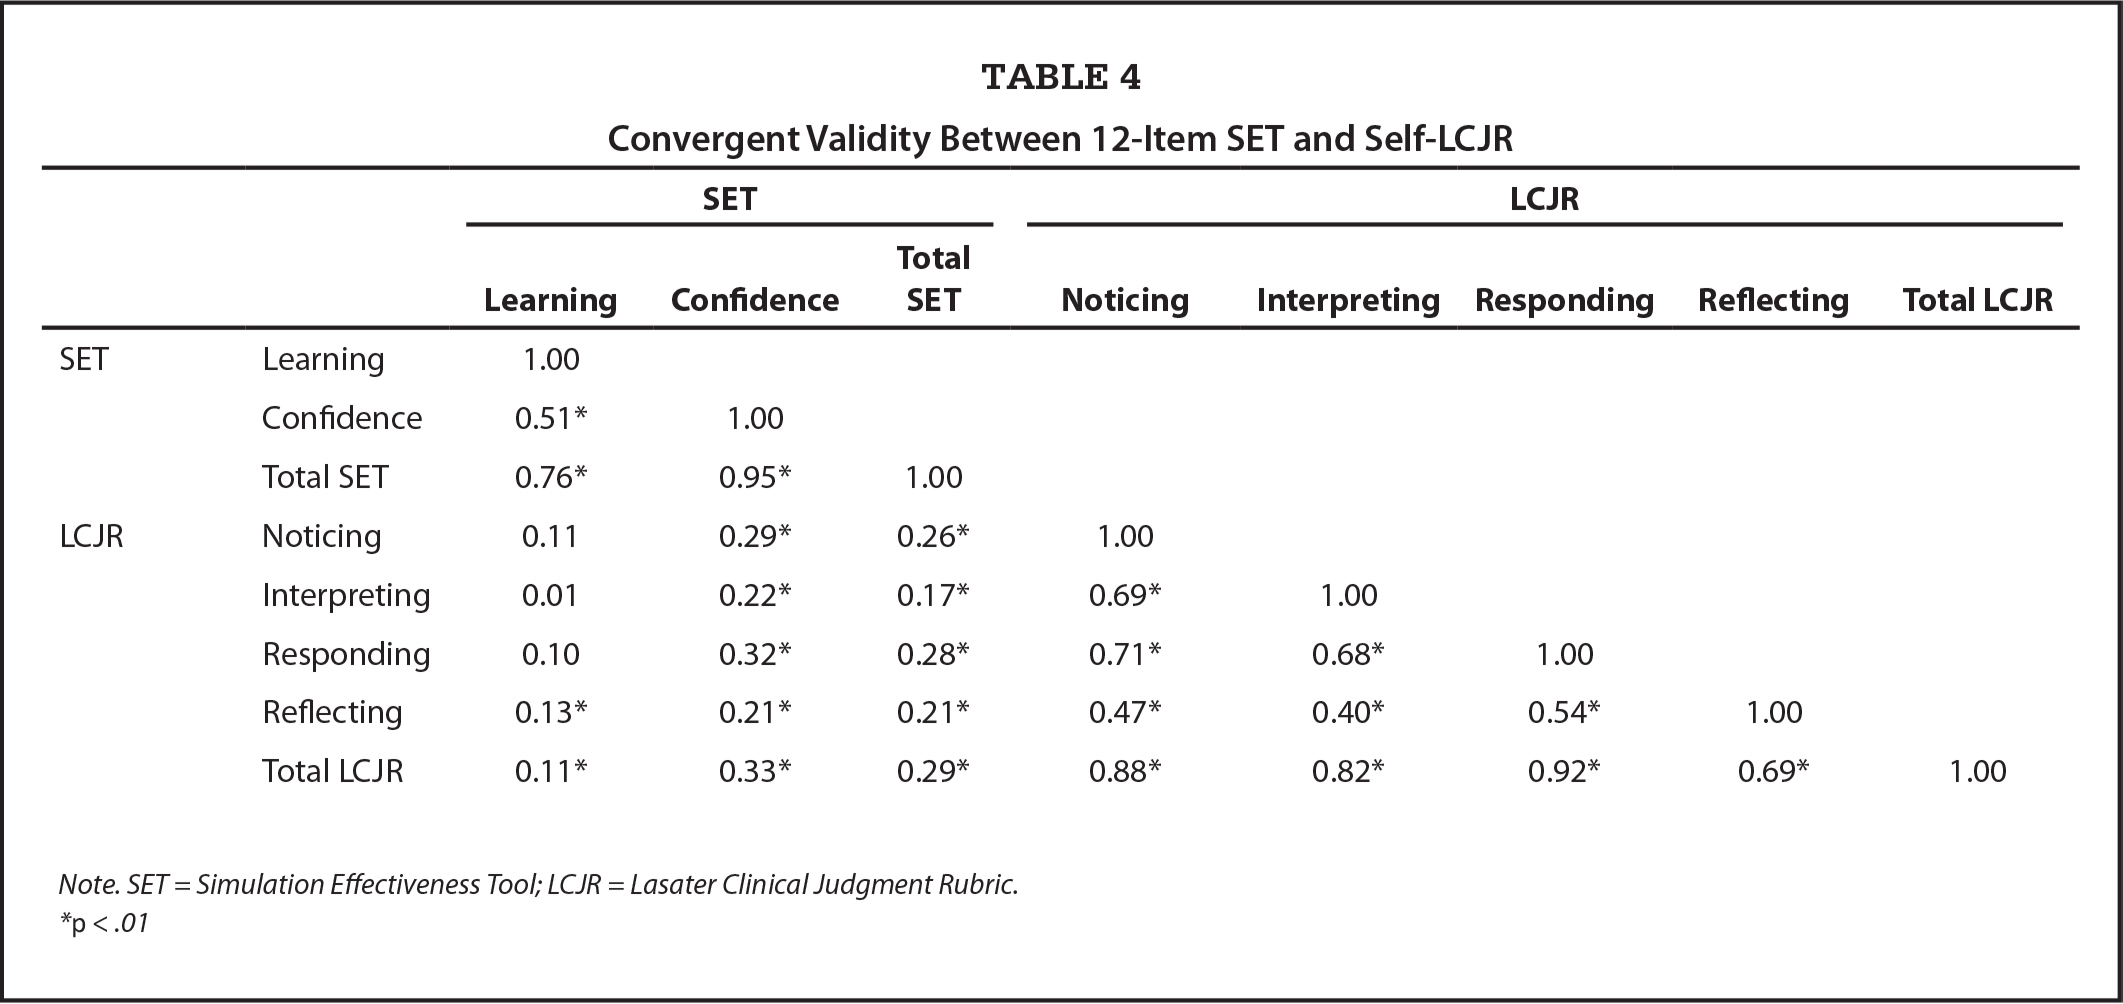 Convergent Validity Between 12-Item SET and Self-LCJR